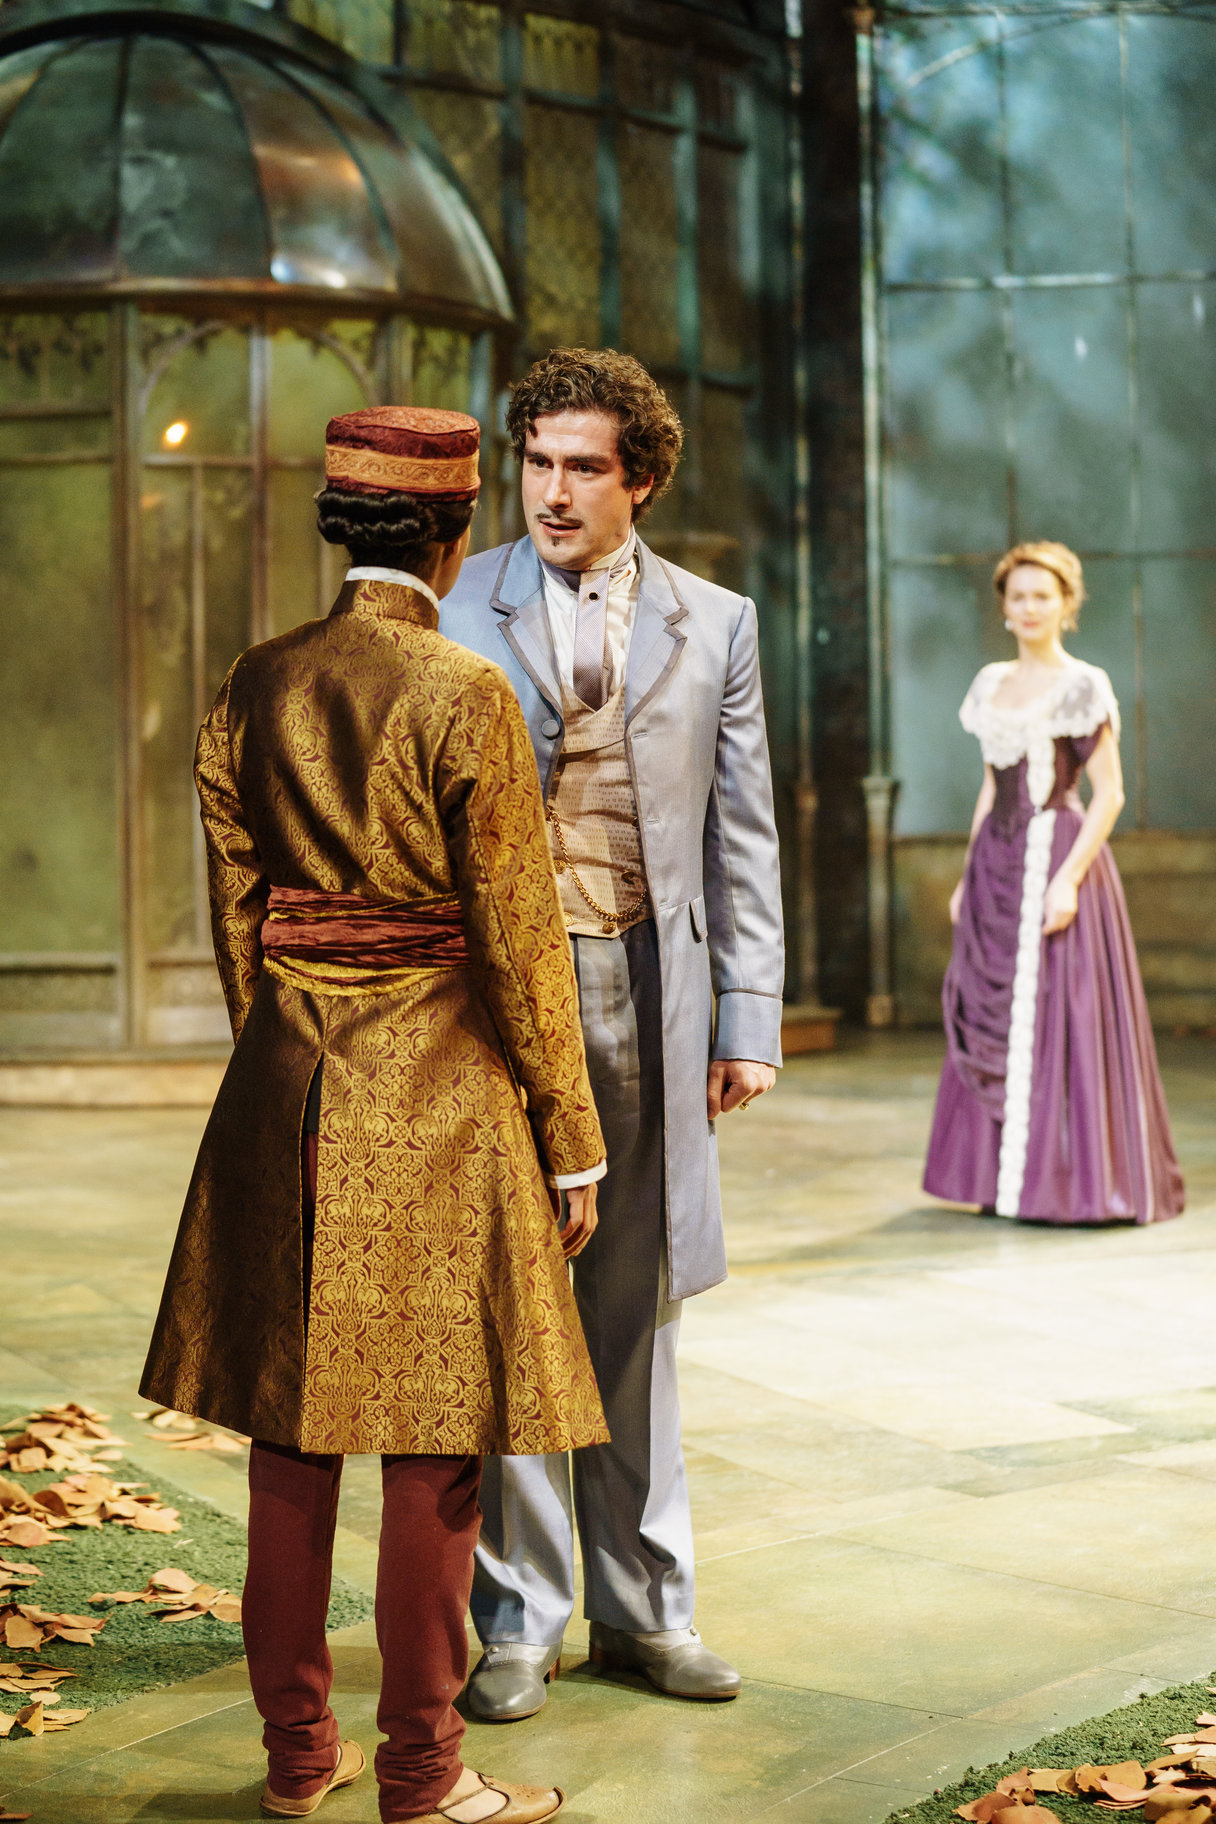 ​Orsino talks to Cesario outside Olivia's house while Olivia, dressed in a purple dress, watches in the 2017 production of Twelfth Night.